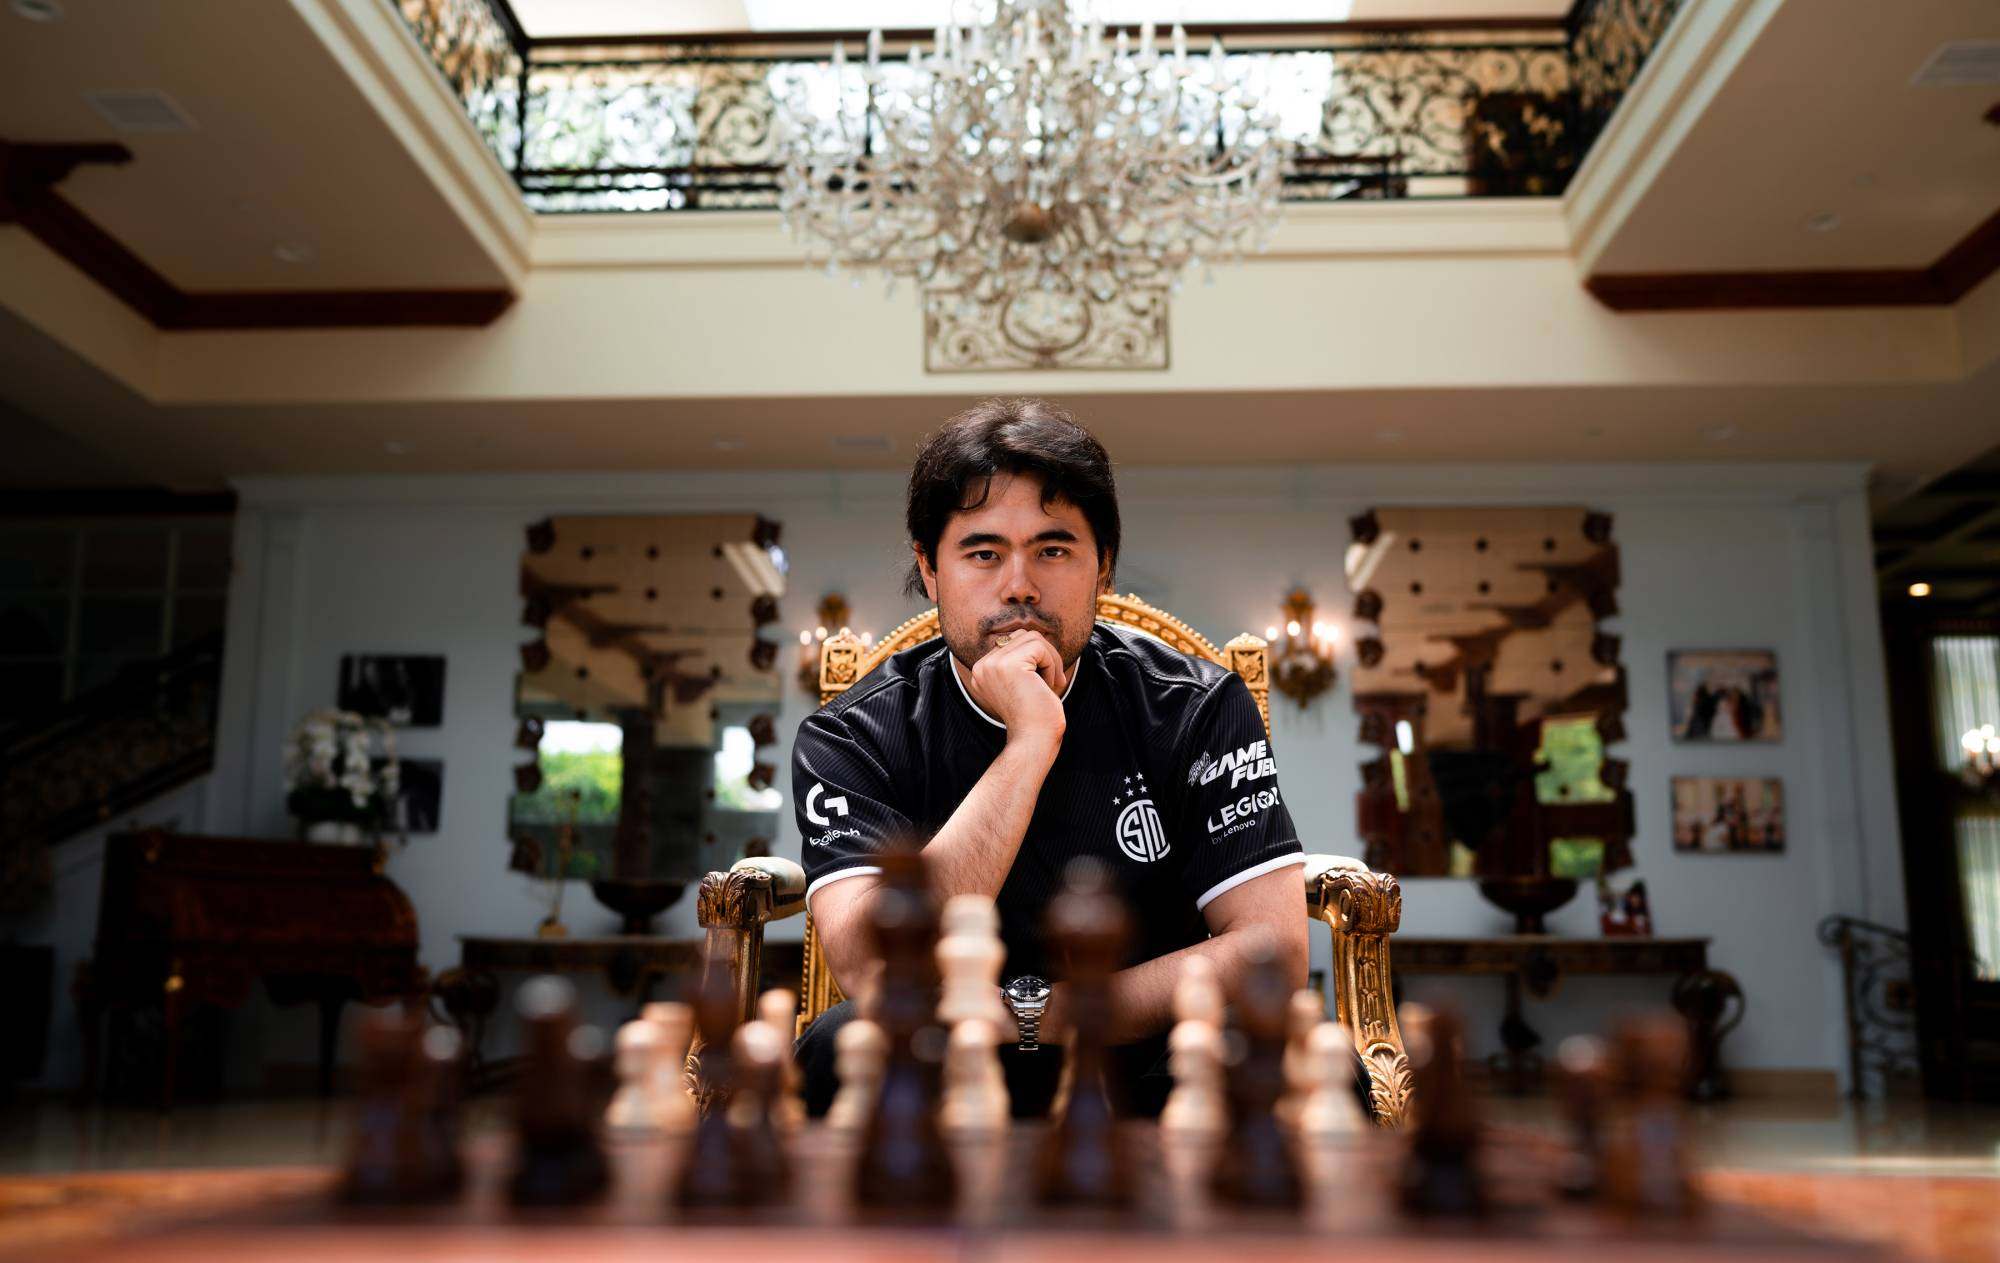 Nearly all of chess grandmaster Hikaru Nakamura's 528,000 followers on Twitch have come aboard since the pandemic began.  | THOMAS WEHLE / TSM / VIA THE NEW YORK TIMES